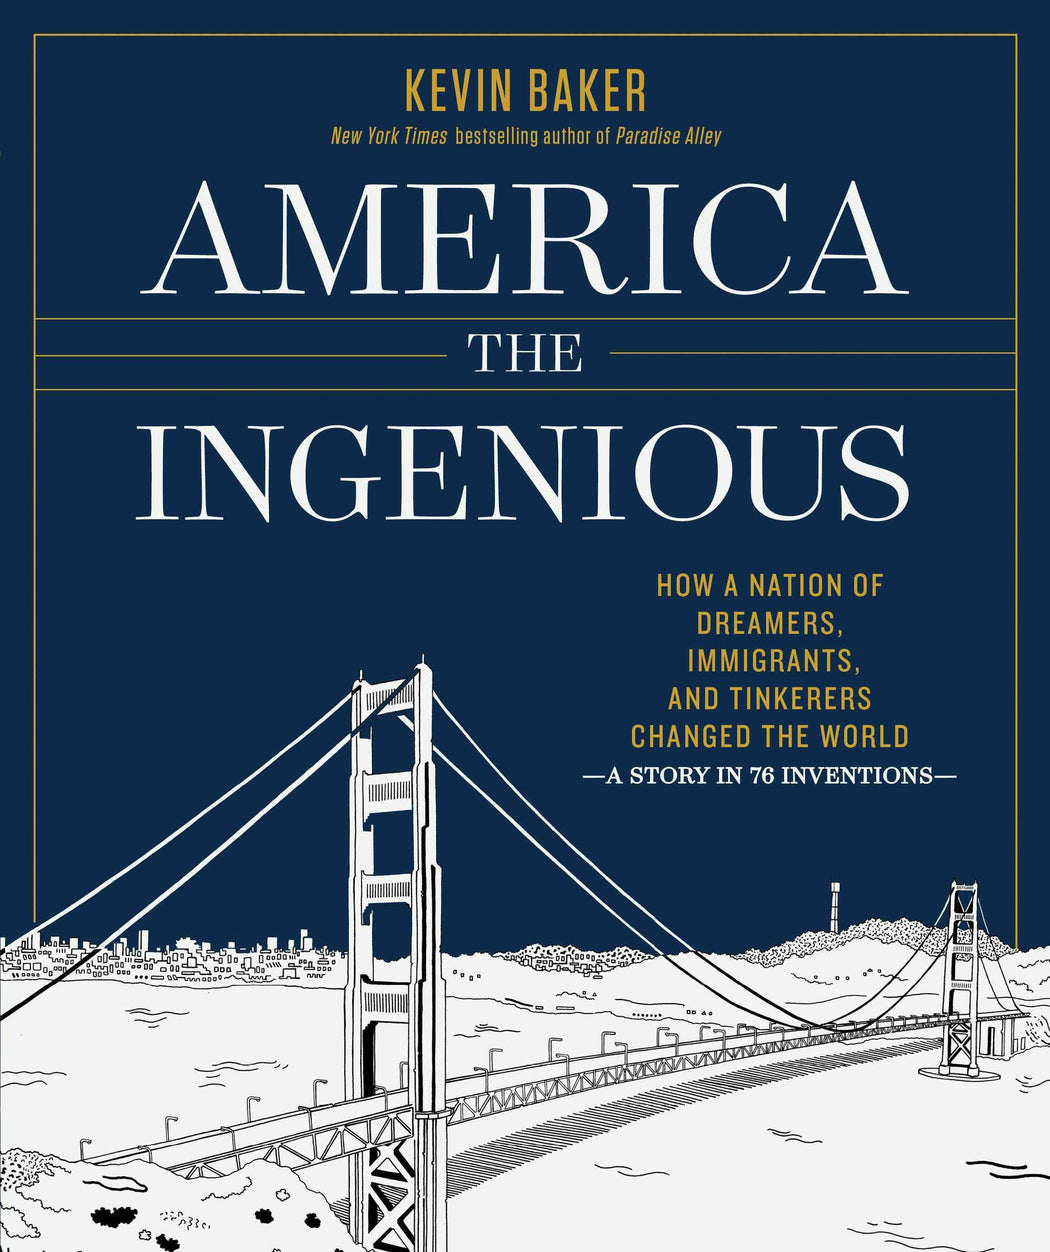 America the Ingenius, Workman Publishing Co. - Gingerly Witty